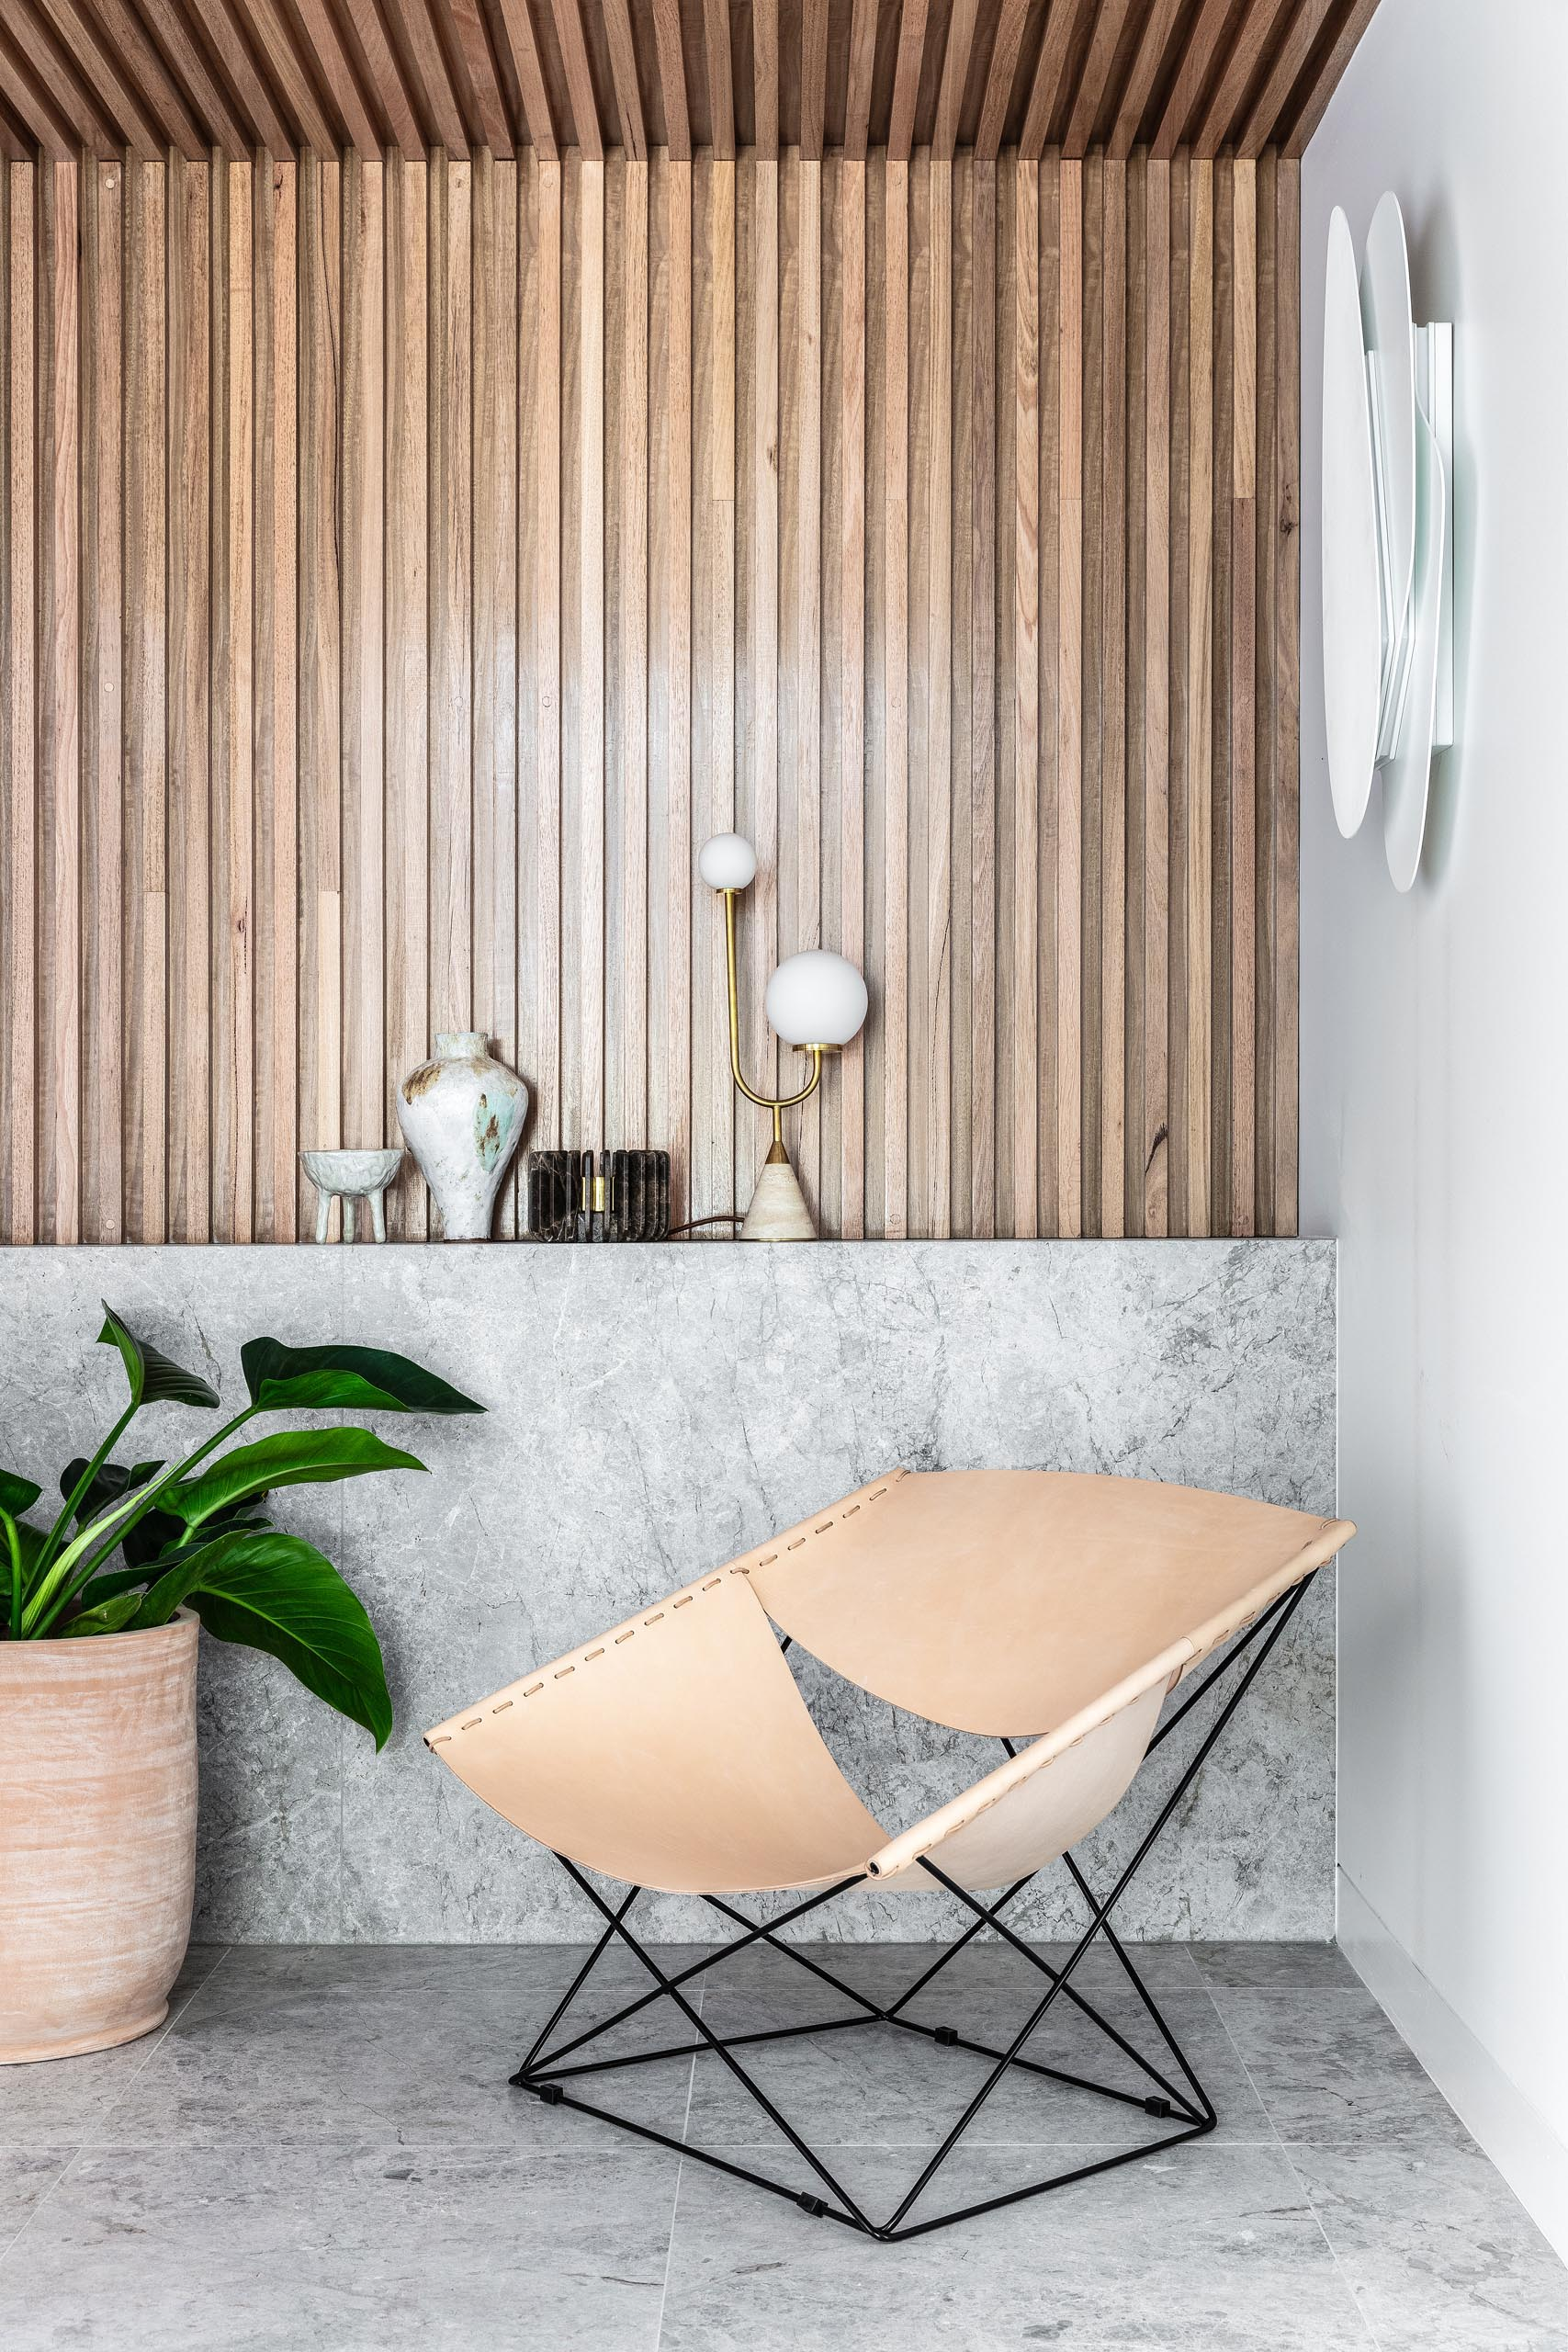 A modern entryway with a leather chair, a wood slat wall that flows onto the ceiling, and a stone accent that acts as a shelf.